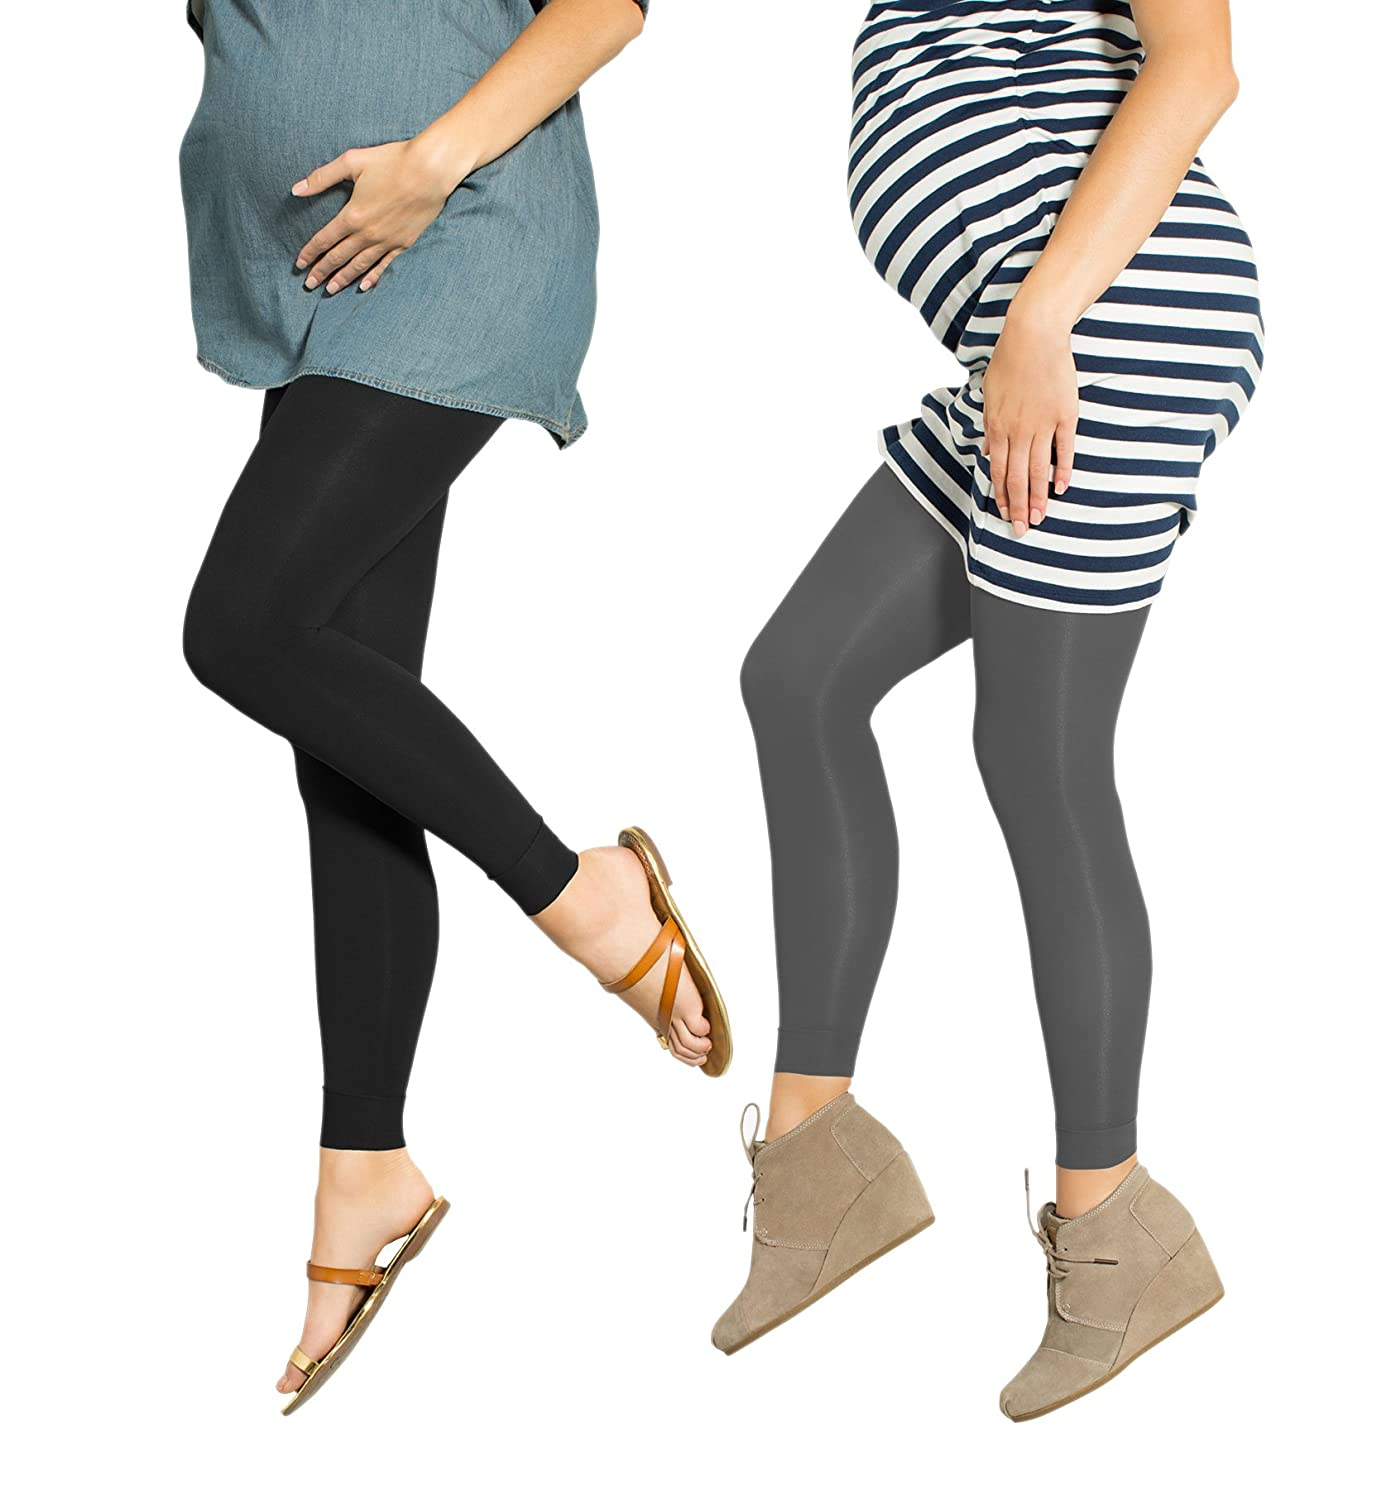 8f1ce65cc4cc6 2 Pack Preggers 10-15mmhg Footless Maternity Compression Leggings at Amazon Women's  Clothing store: